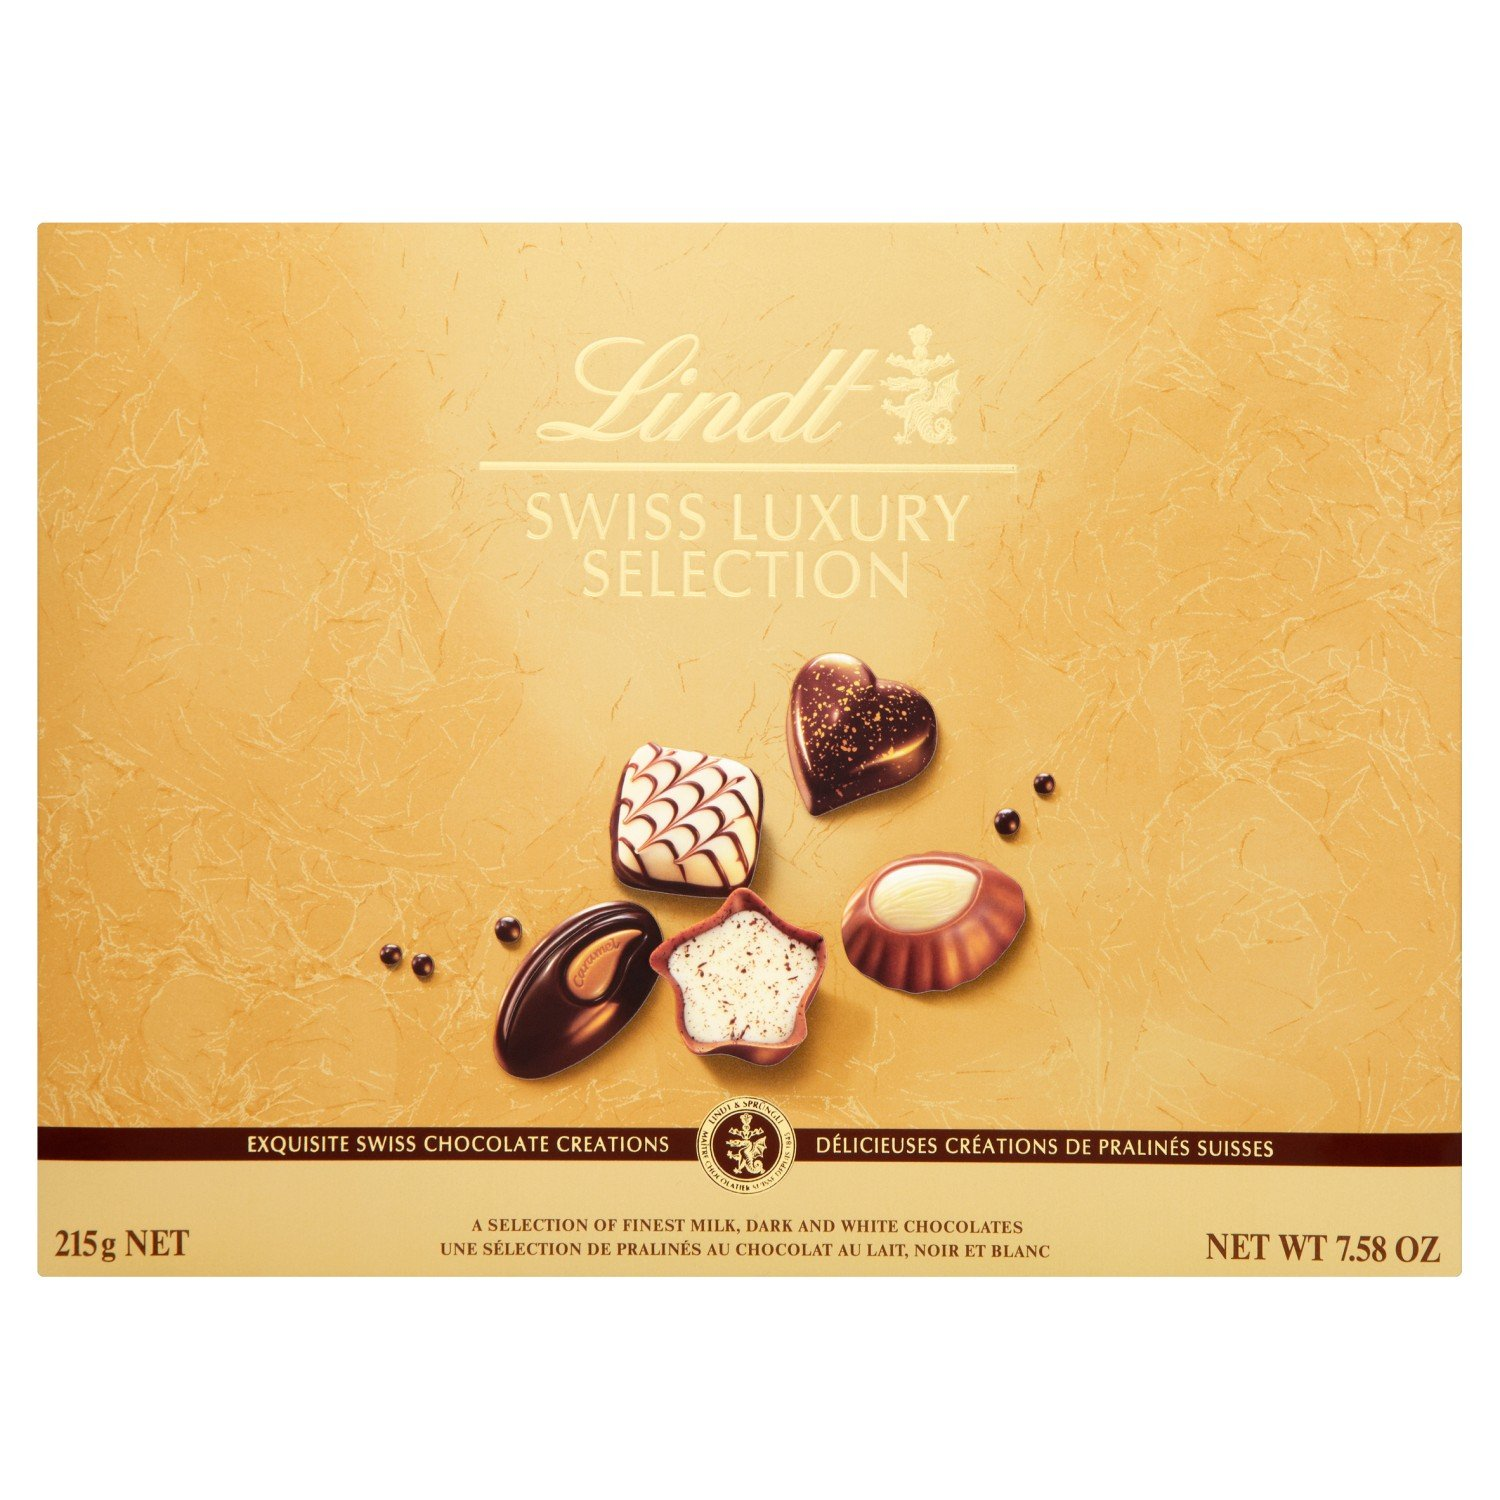 Lindt Swiss Luxury Selection (215g)